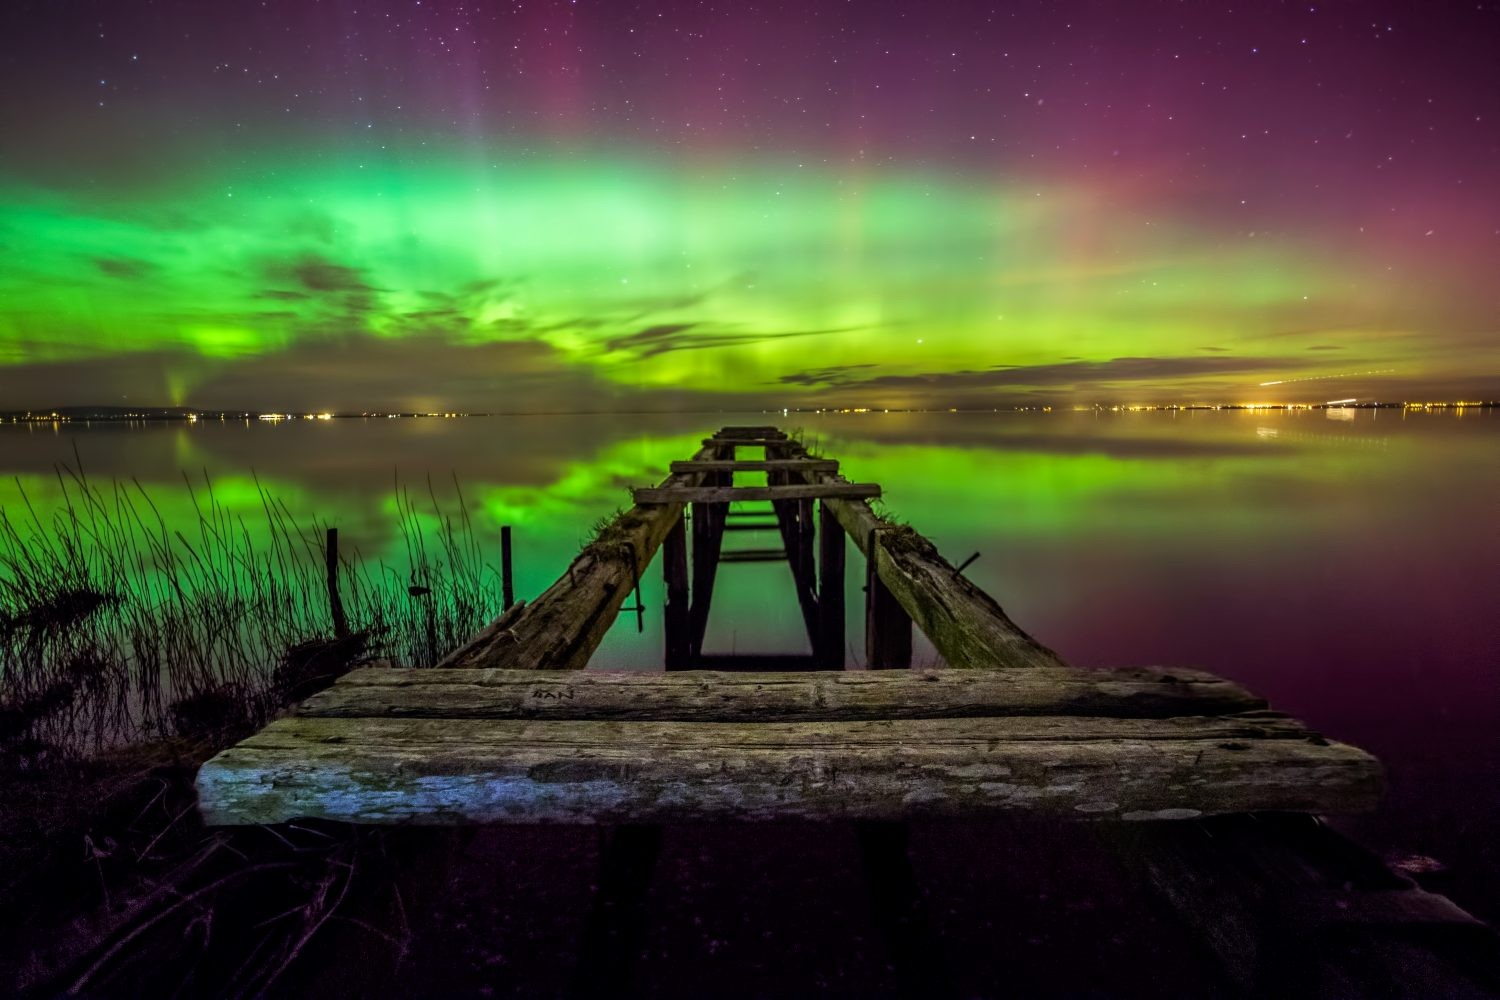 Aurora over Lough Neagh. Credit: Stephen Wallace/ Hibernia Landscapes